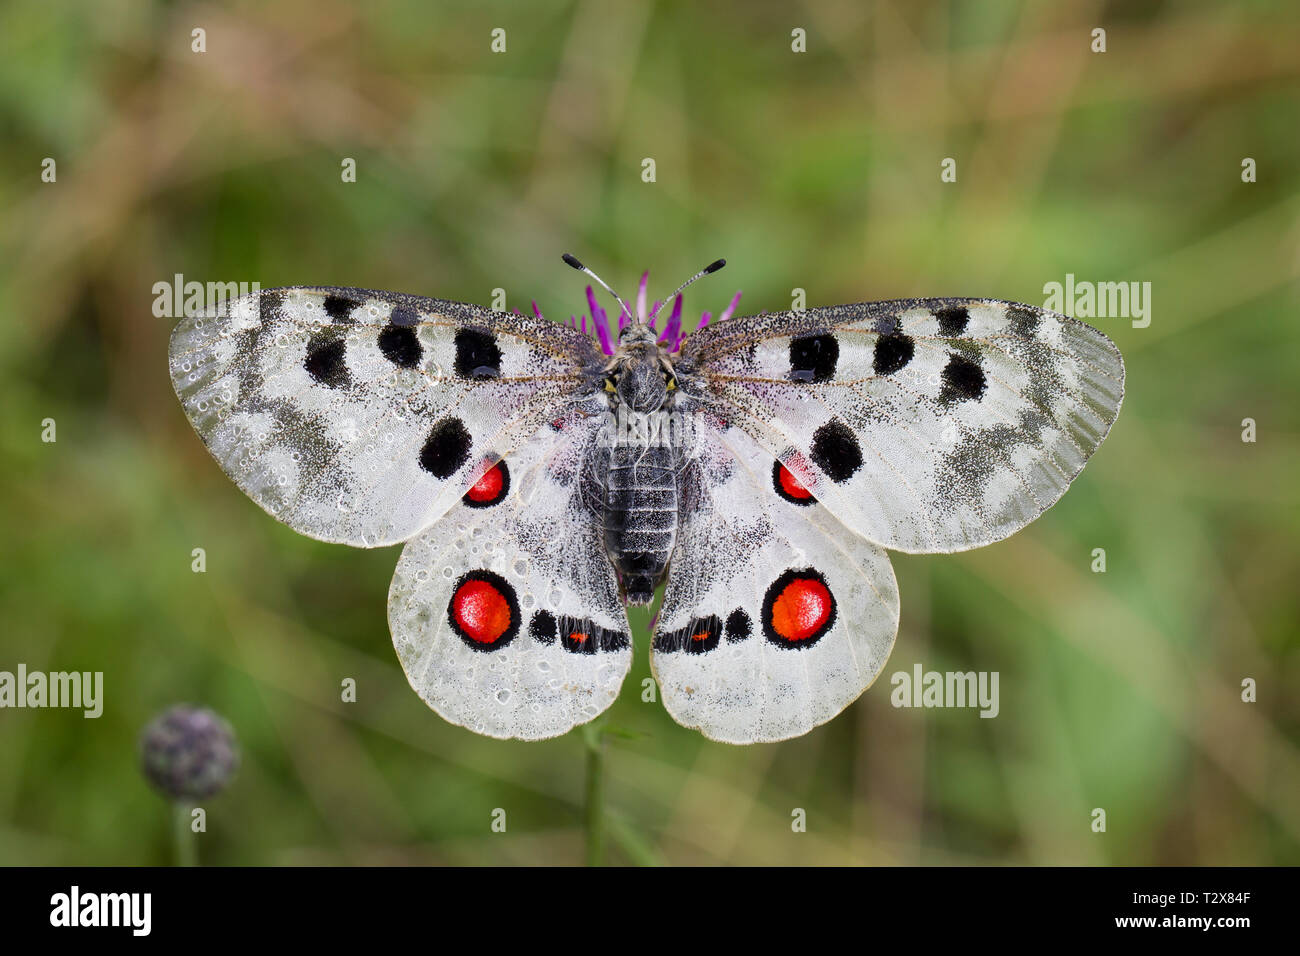 Apollofalter, Parnassius apollo, mountain Apollo - Stock Image